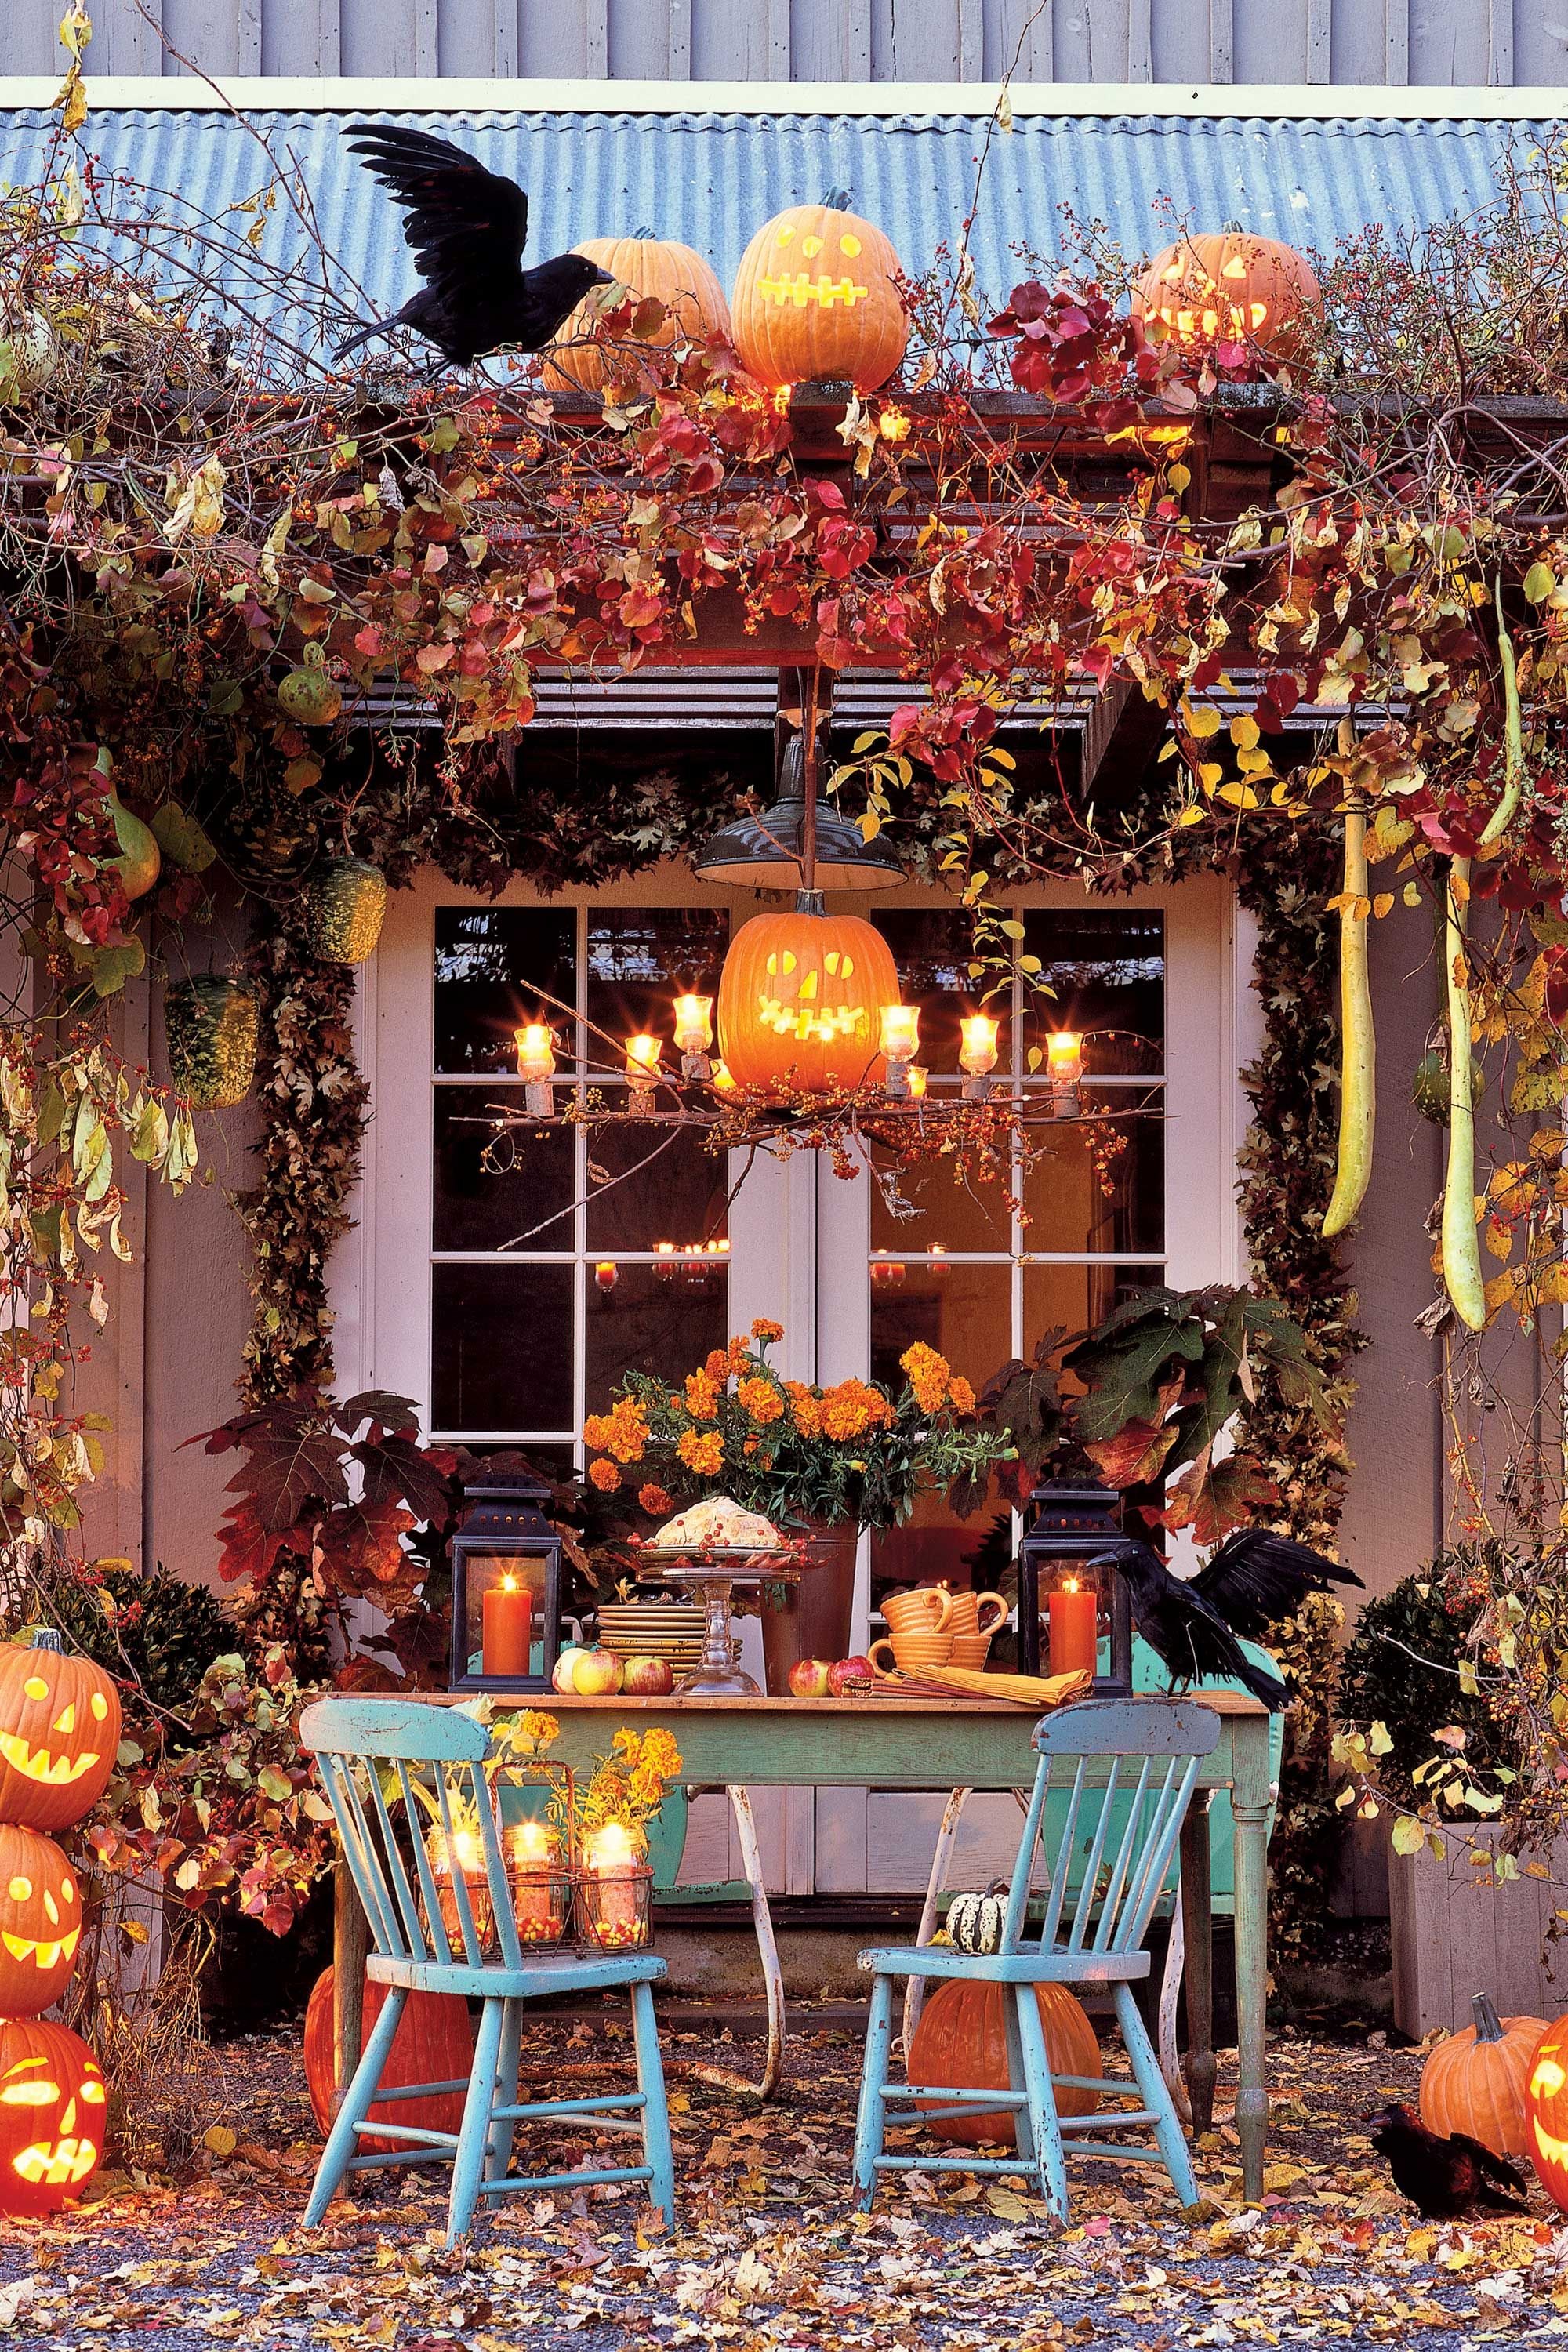 Halloween front garden ideas - 56 Fun And Festive Halloween Party Decoration Ideas